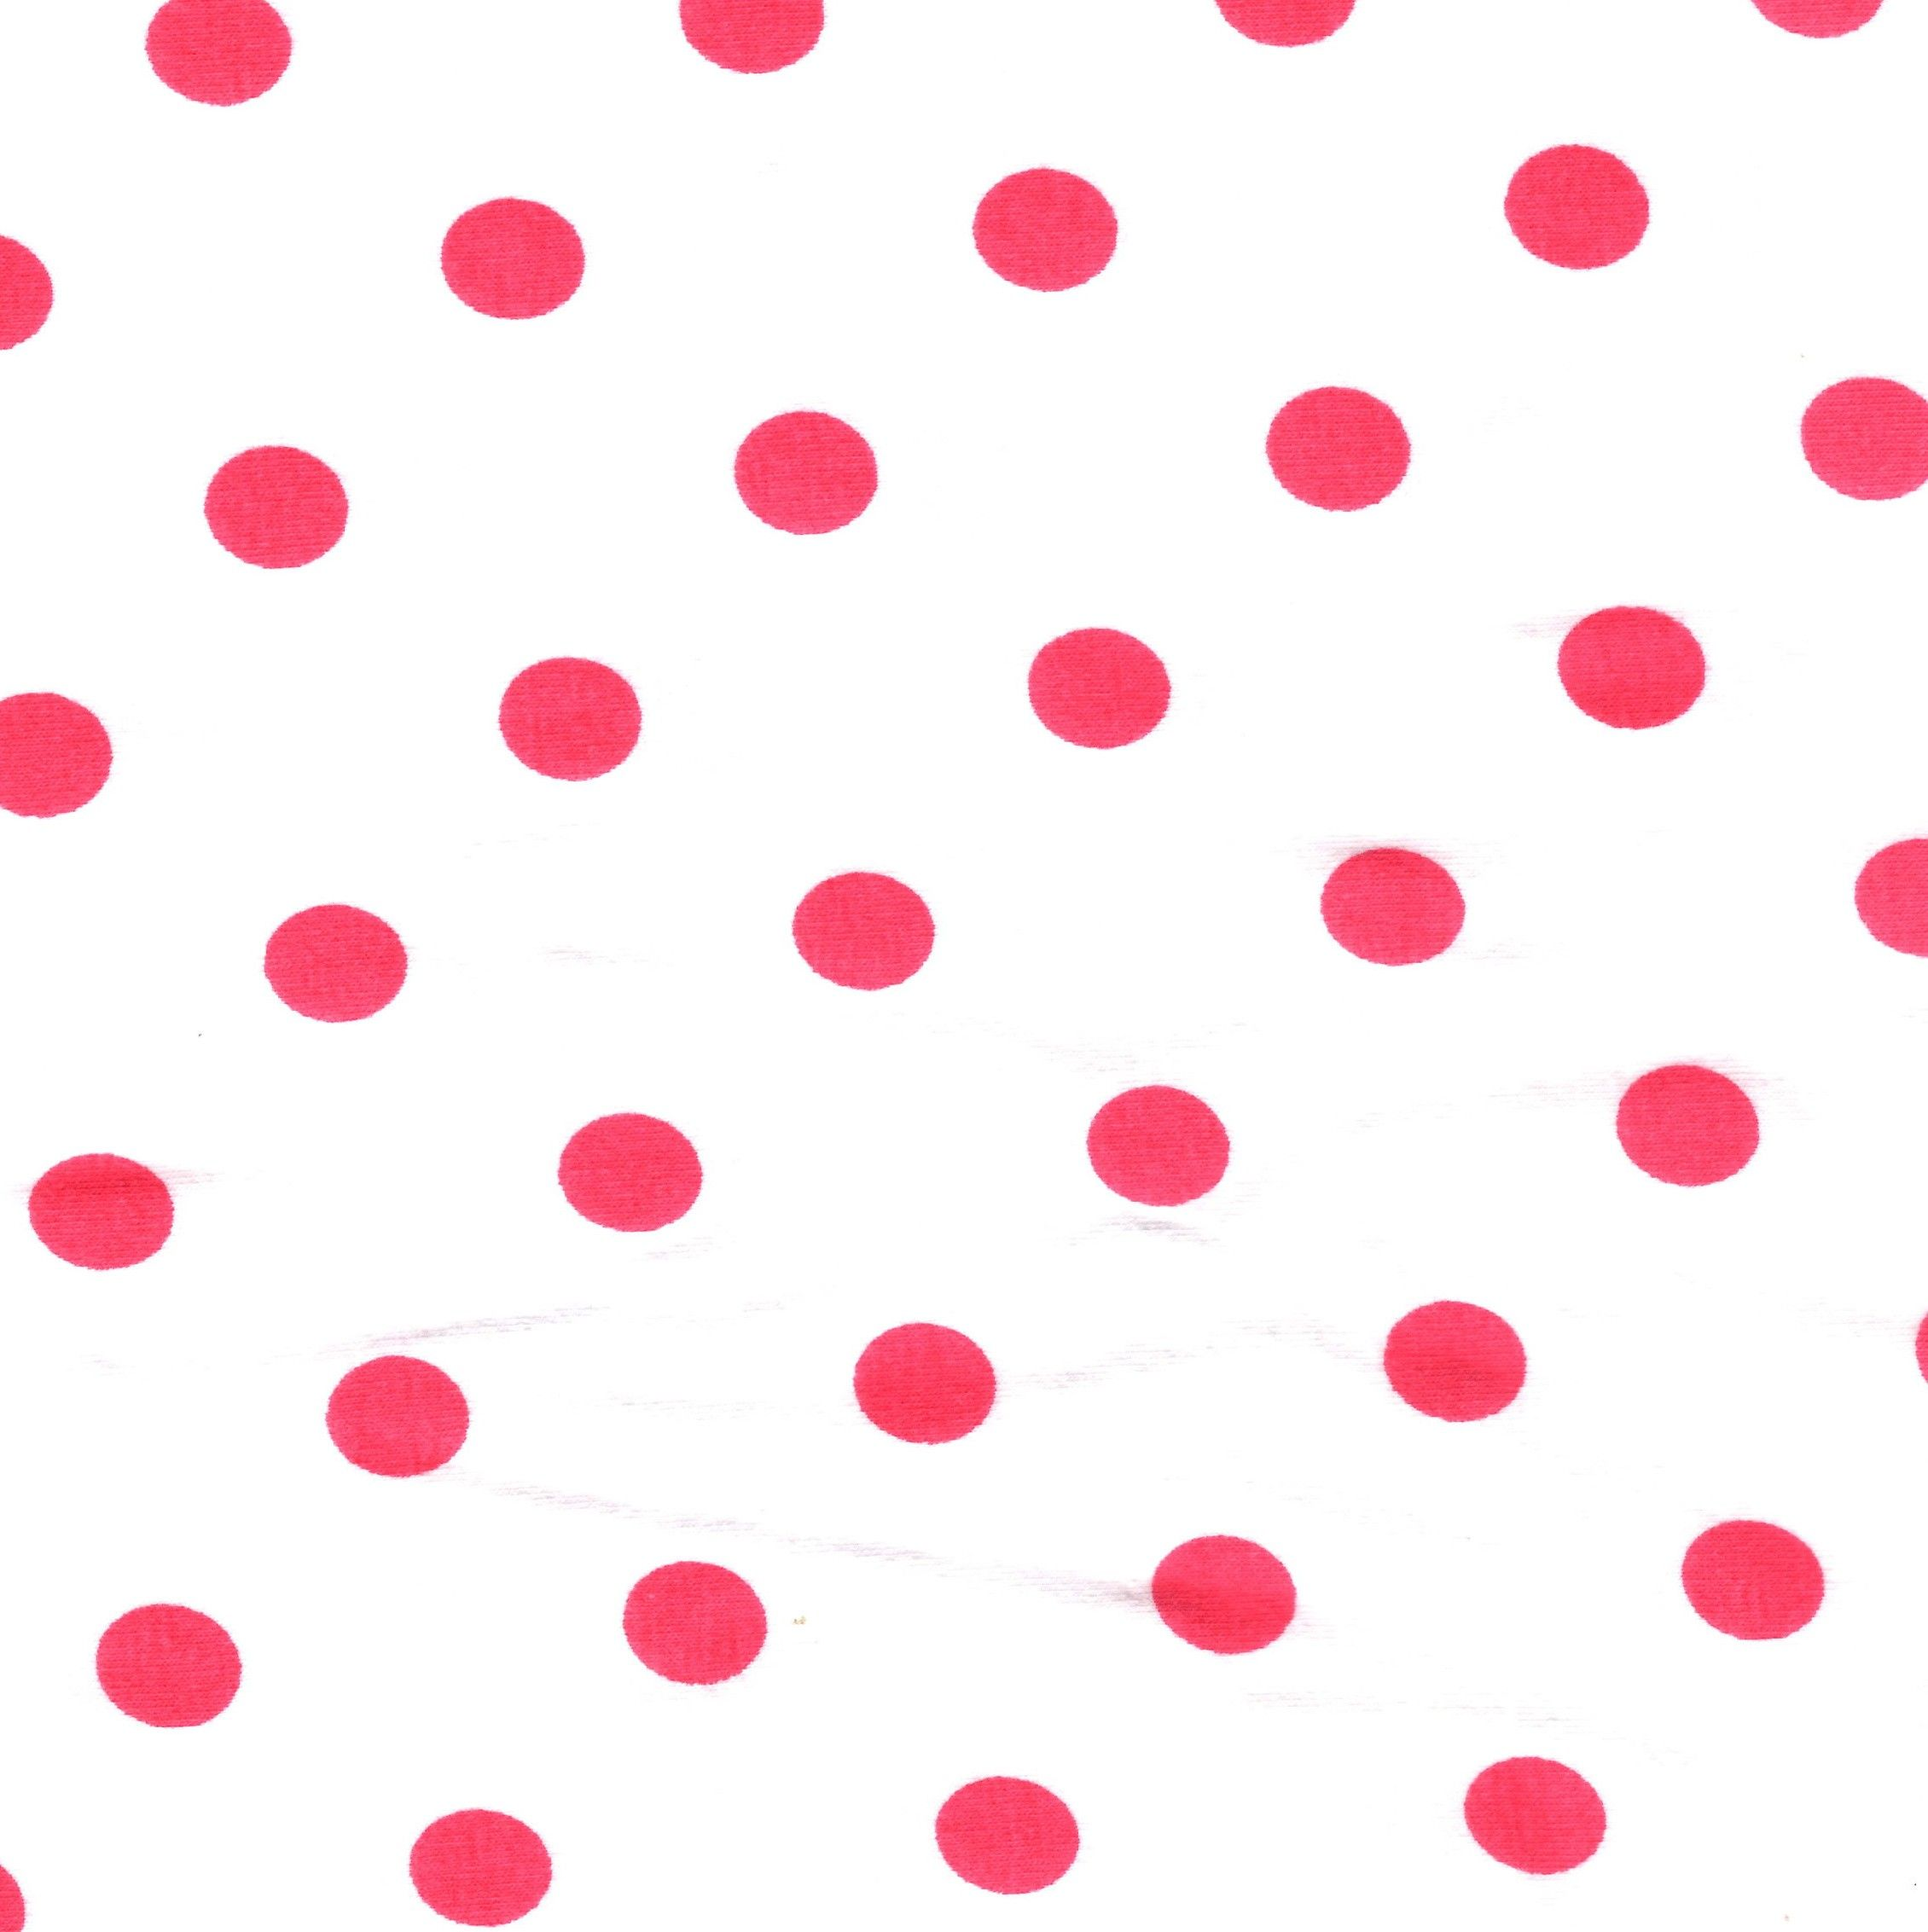 coral polka dots on white cotton lycra knit fabric